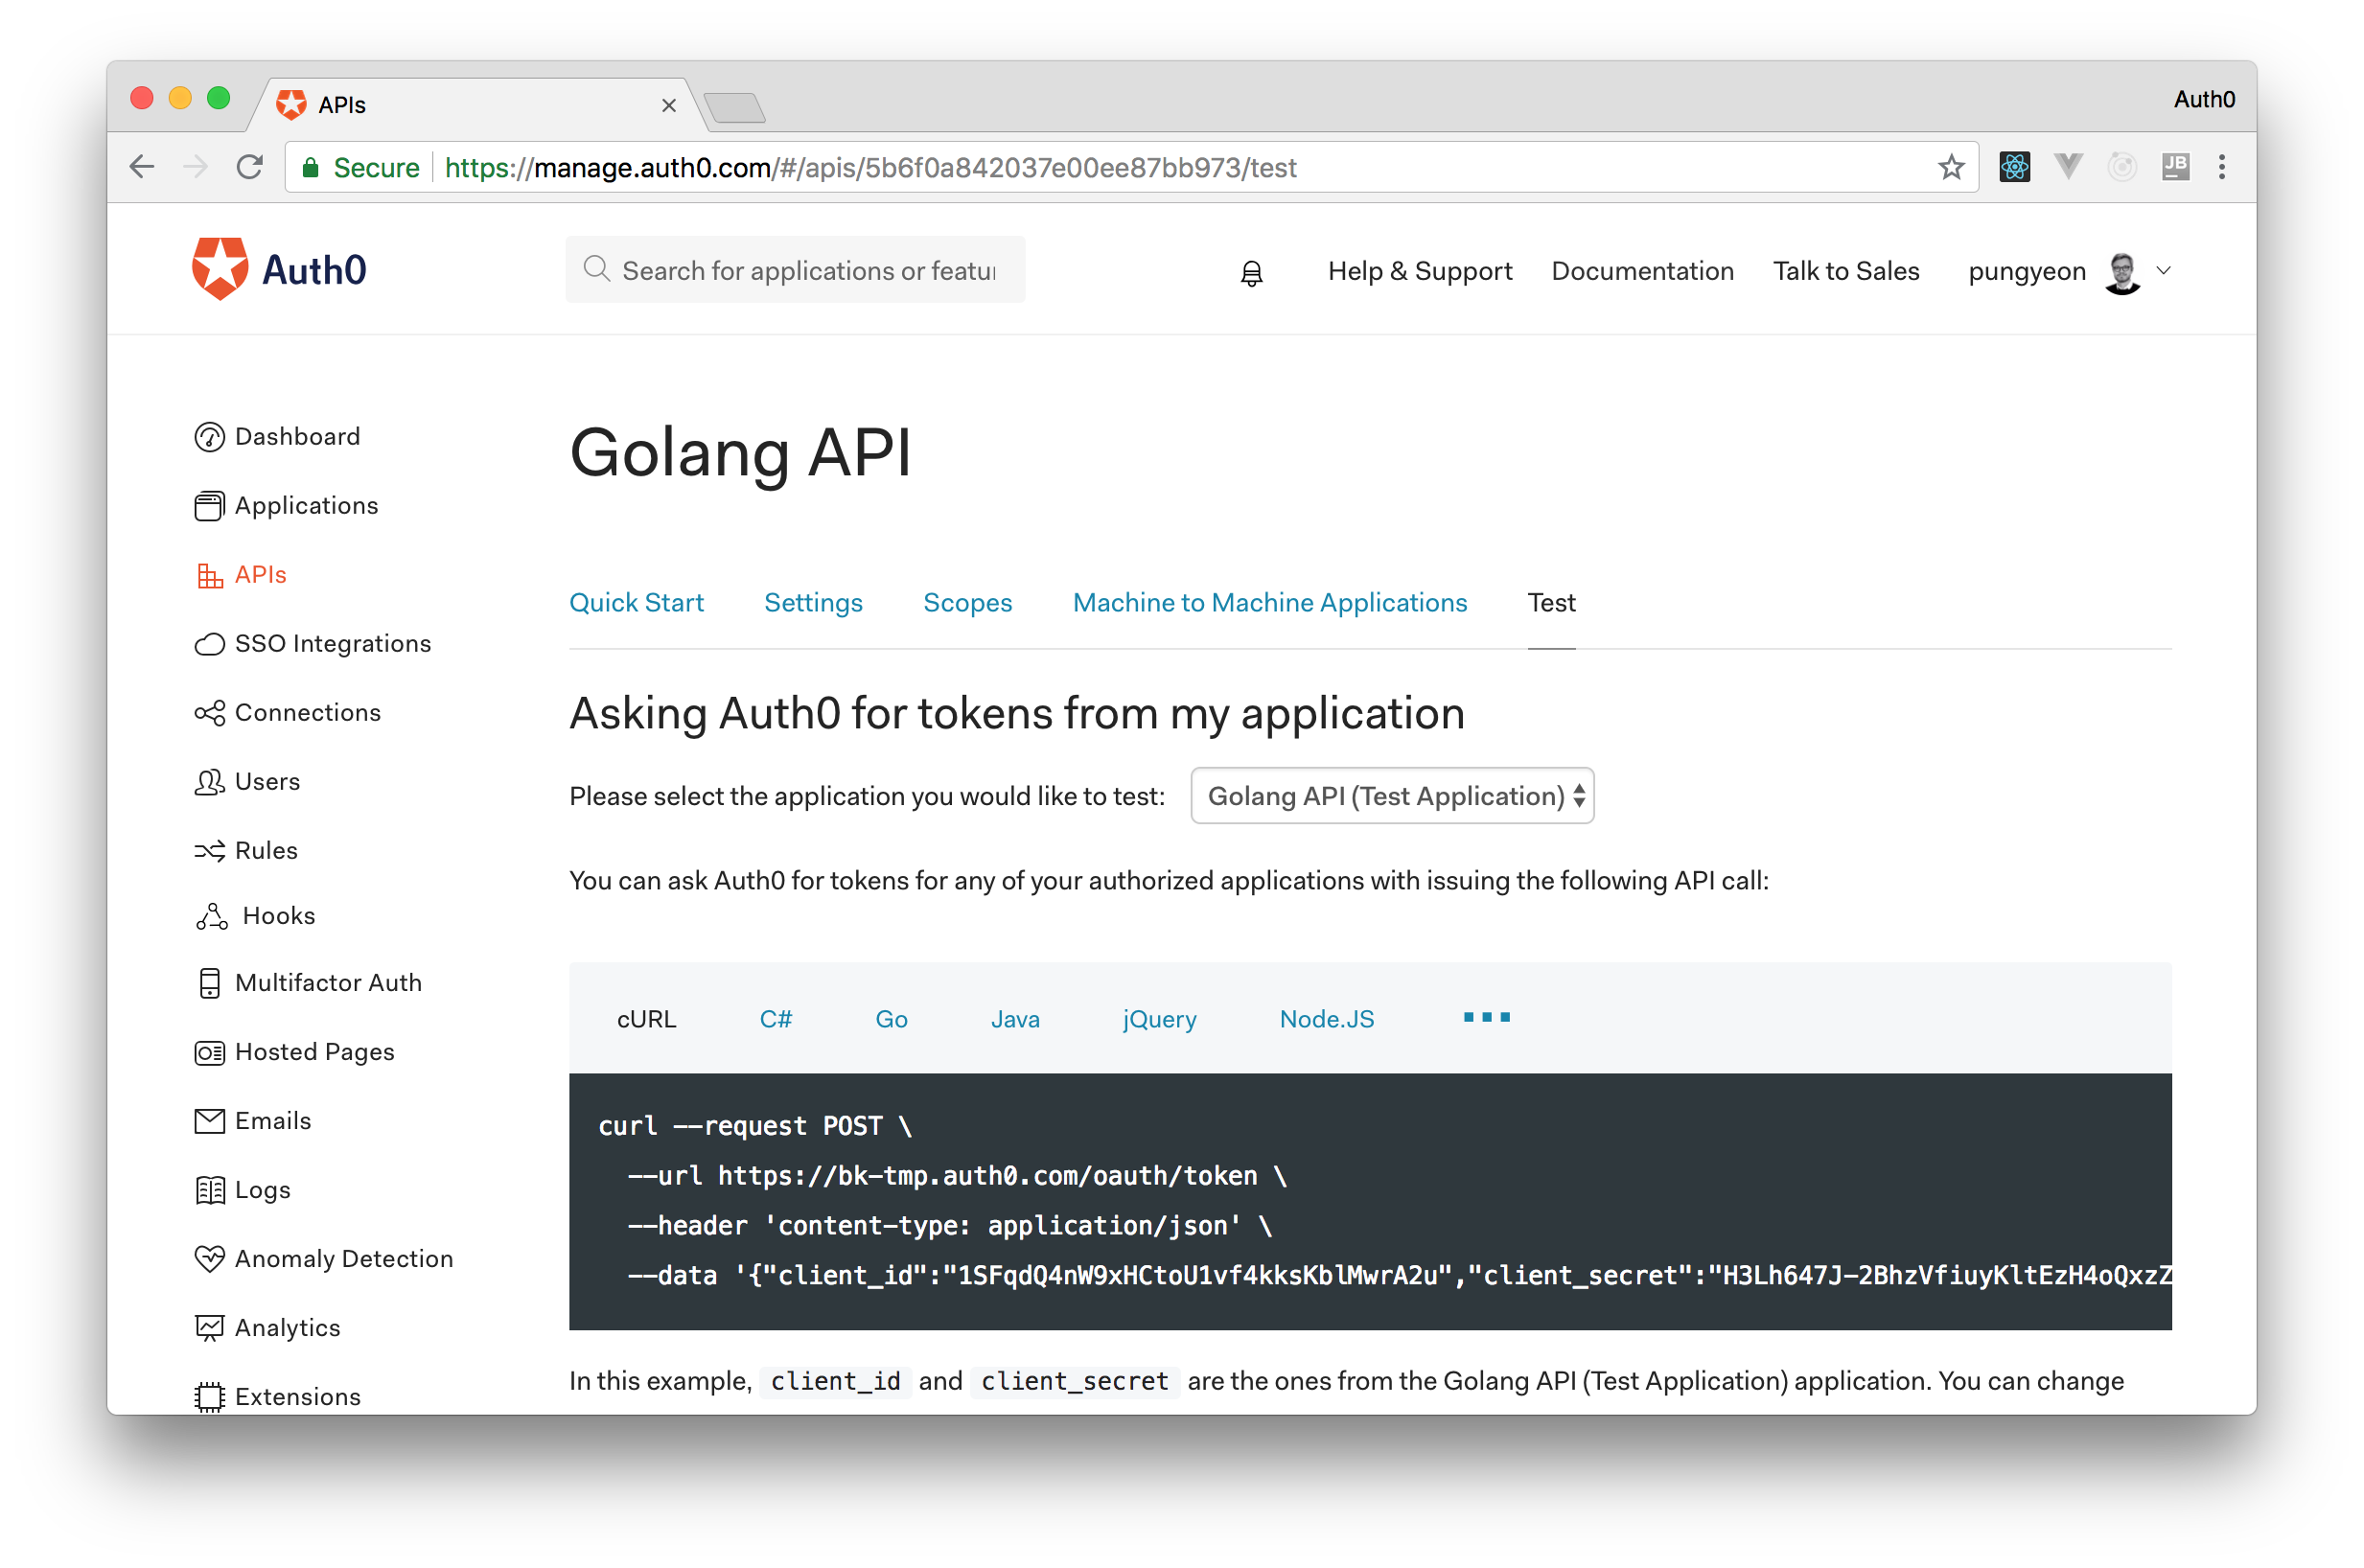 Auth0 showing a curl command to generate access tokens.